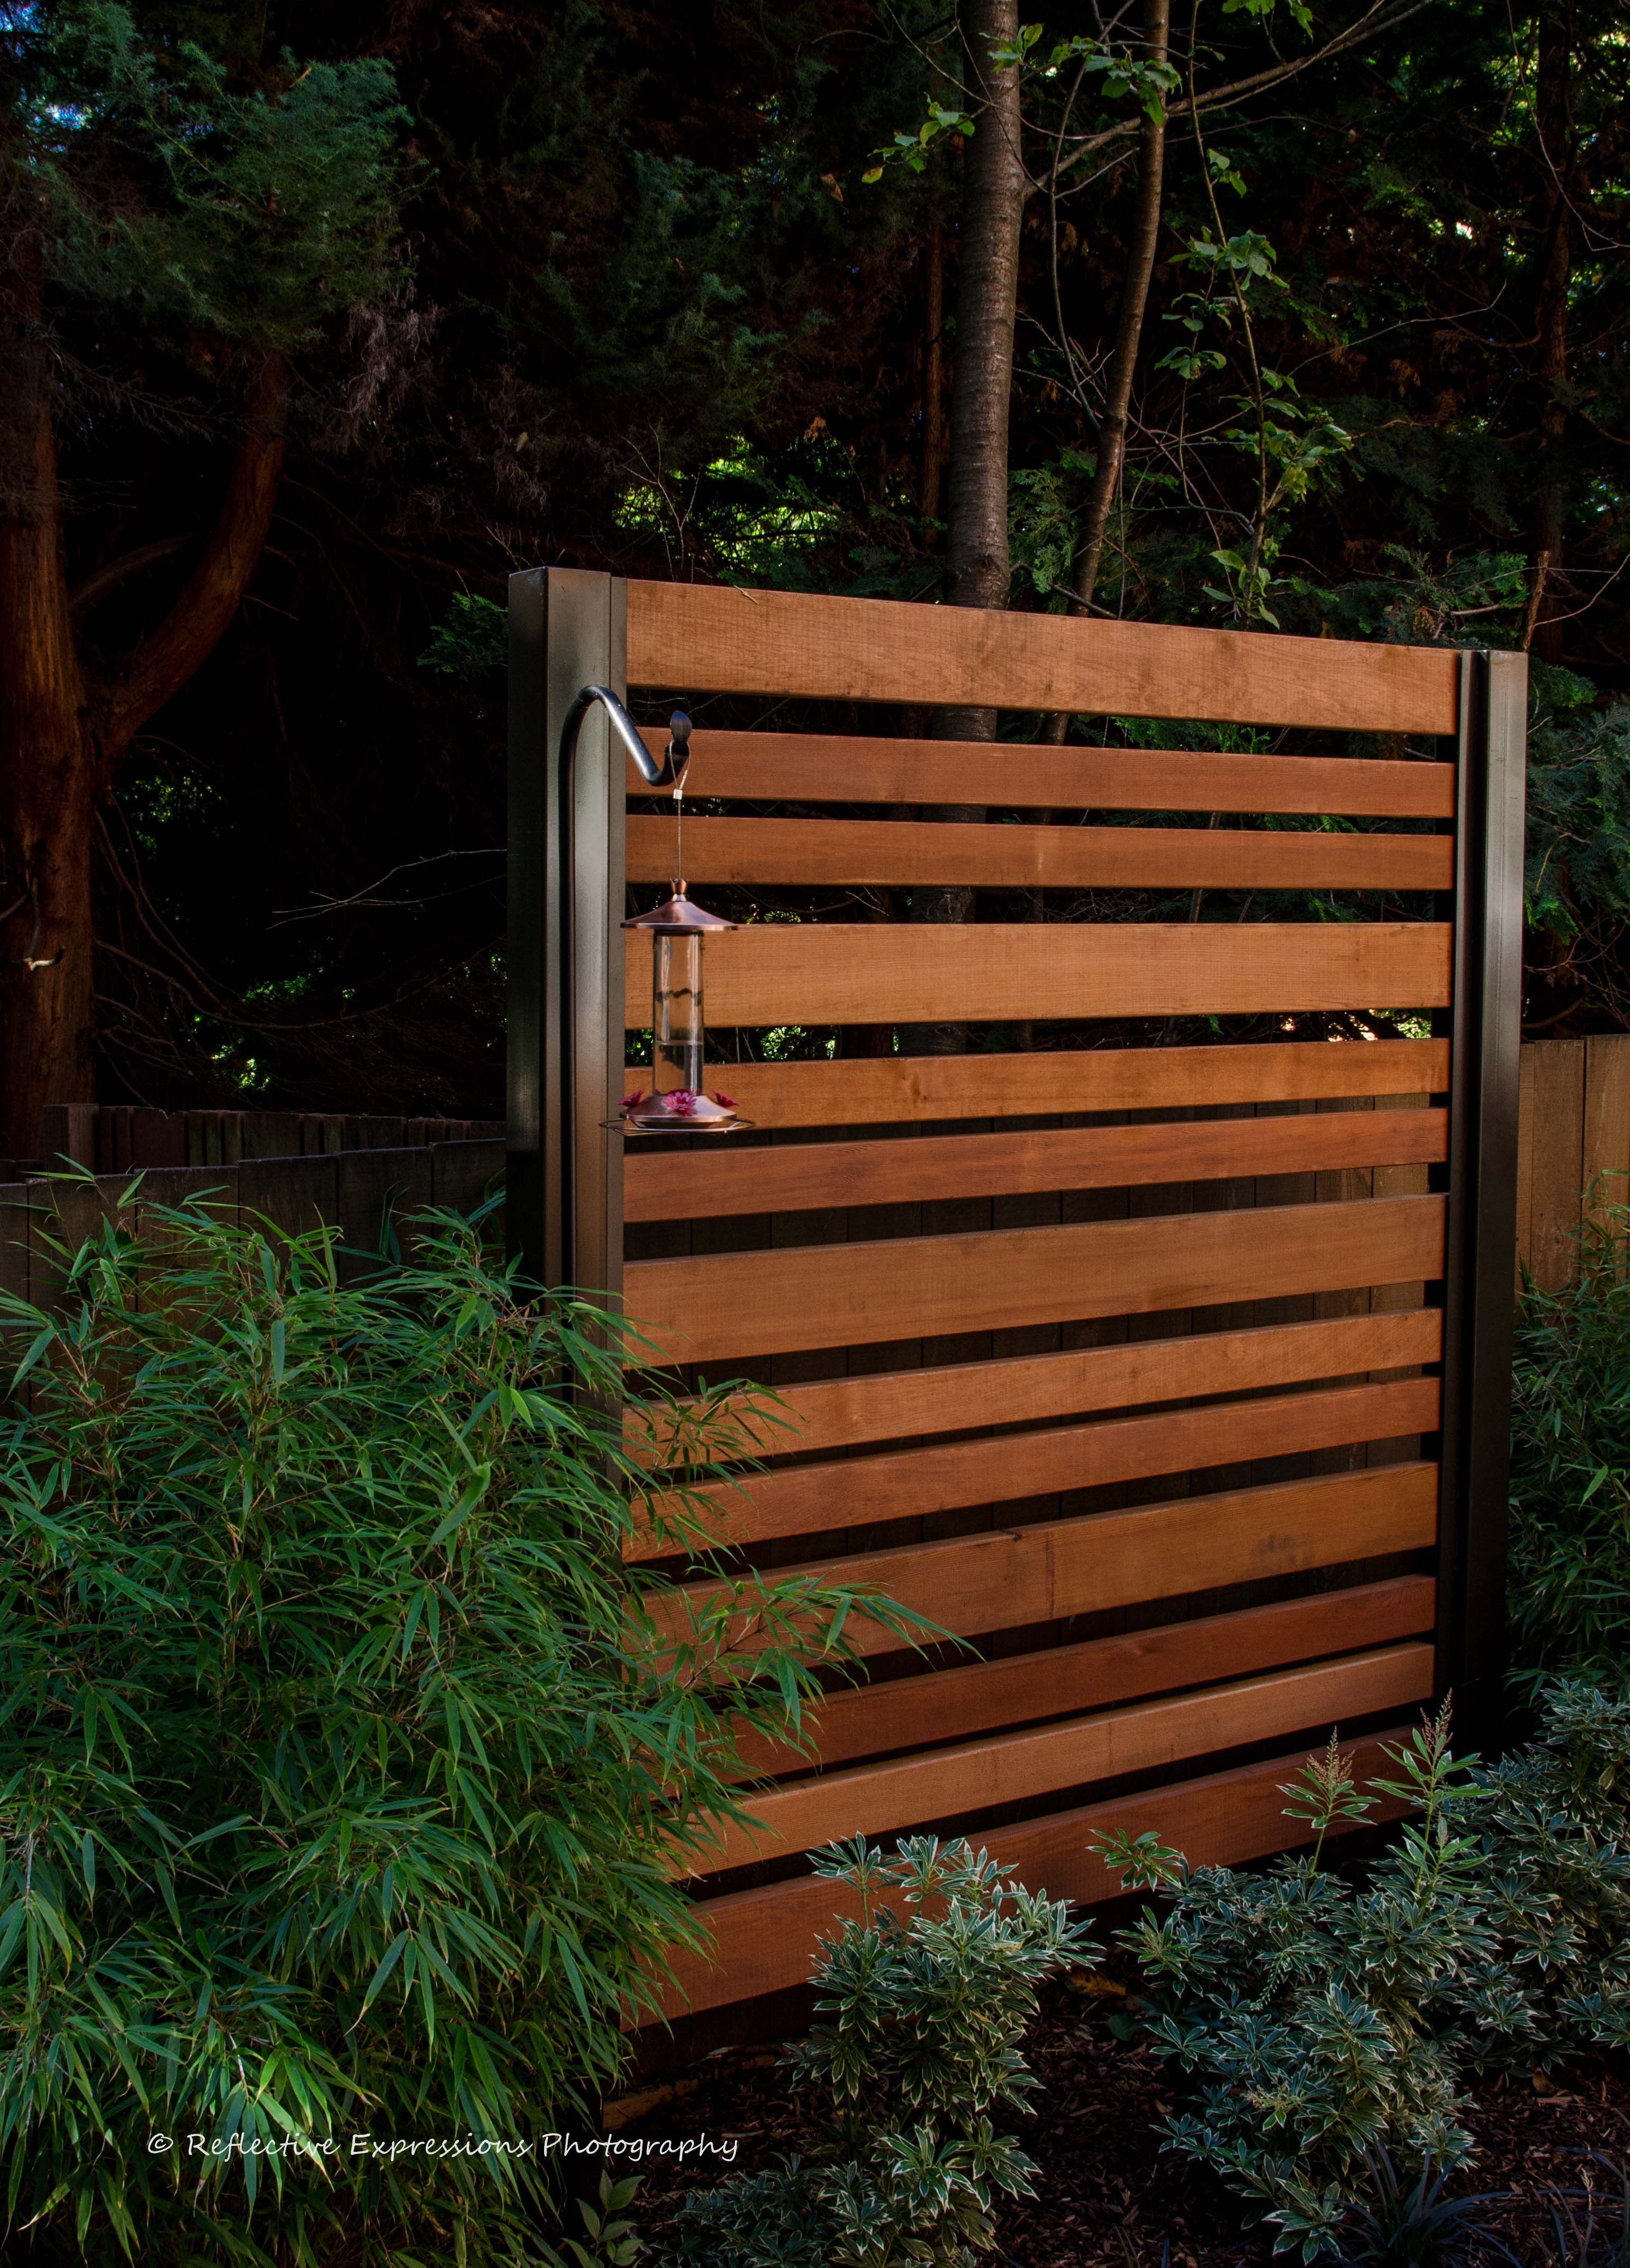 7 Graceful Cool Tips Horizontal Fence Outdoor Showers Fence Landscaping Shade Cedar Fence Porches Rustic Fence Plank Fence Design Backyard Fences Modern Fence